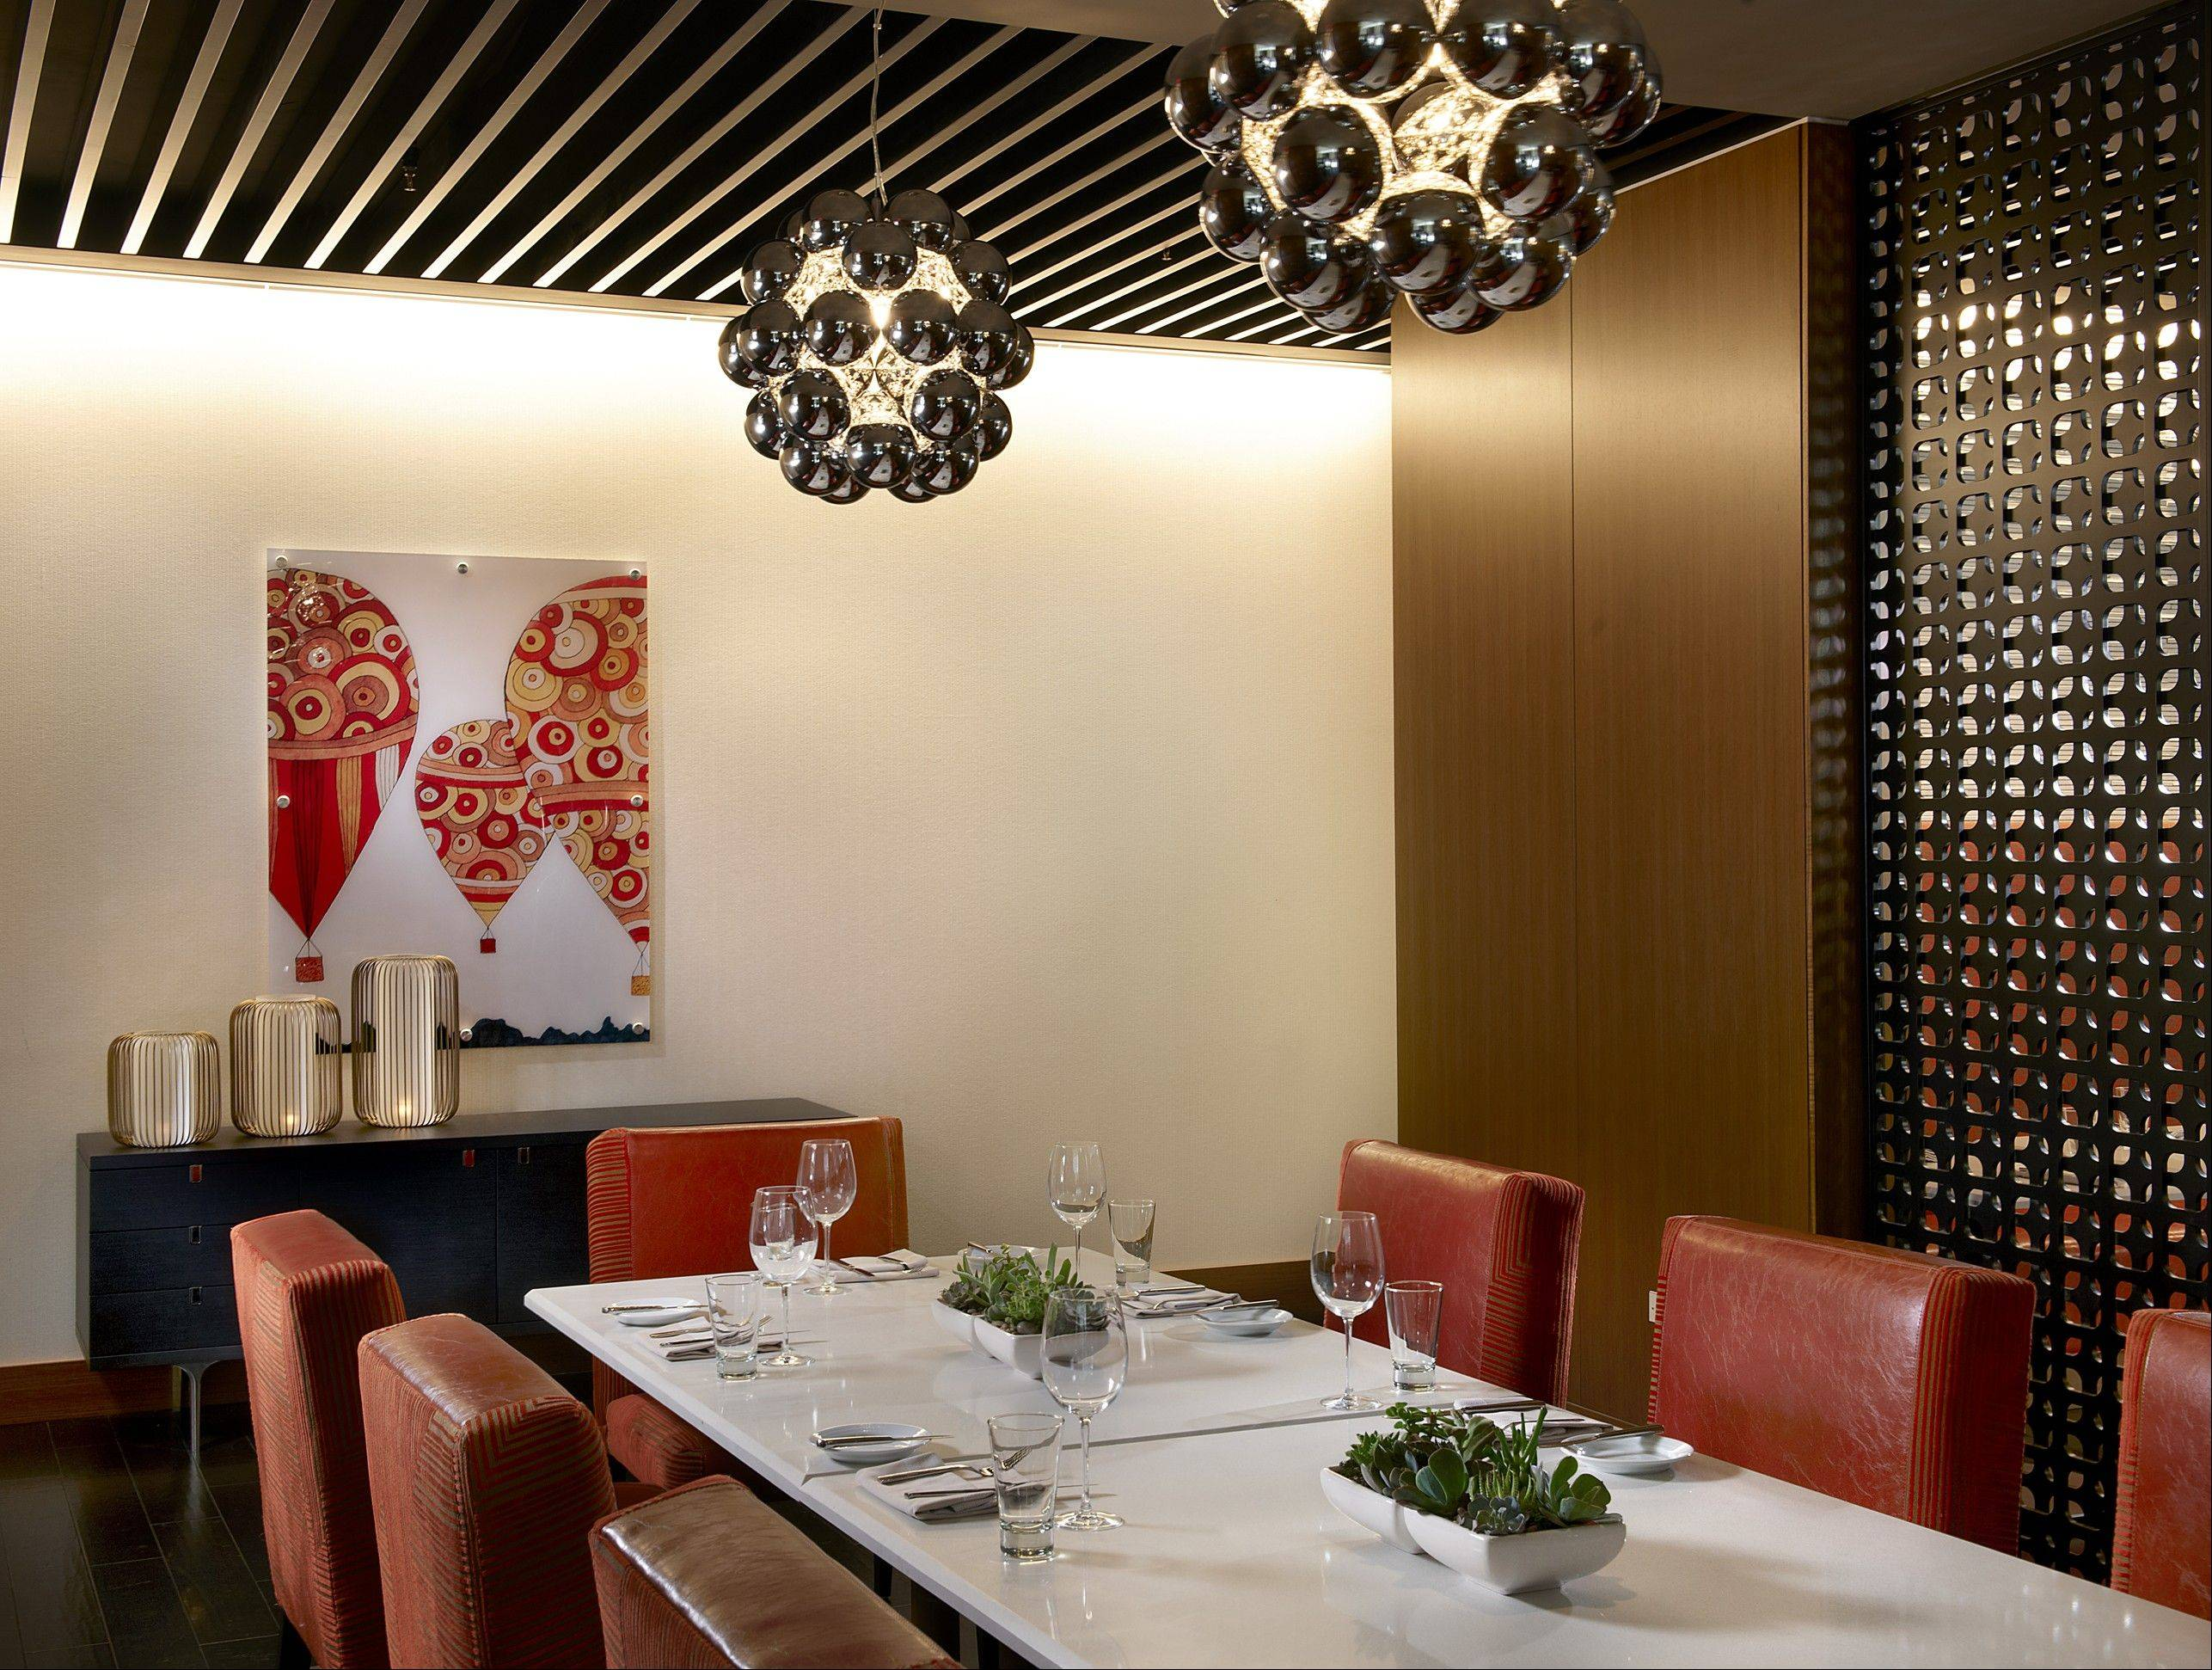 The private dining room awaits guests at the newly opened Artisan Table Restaurant in the Chicago Marriott Naperville.